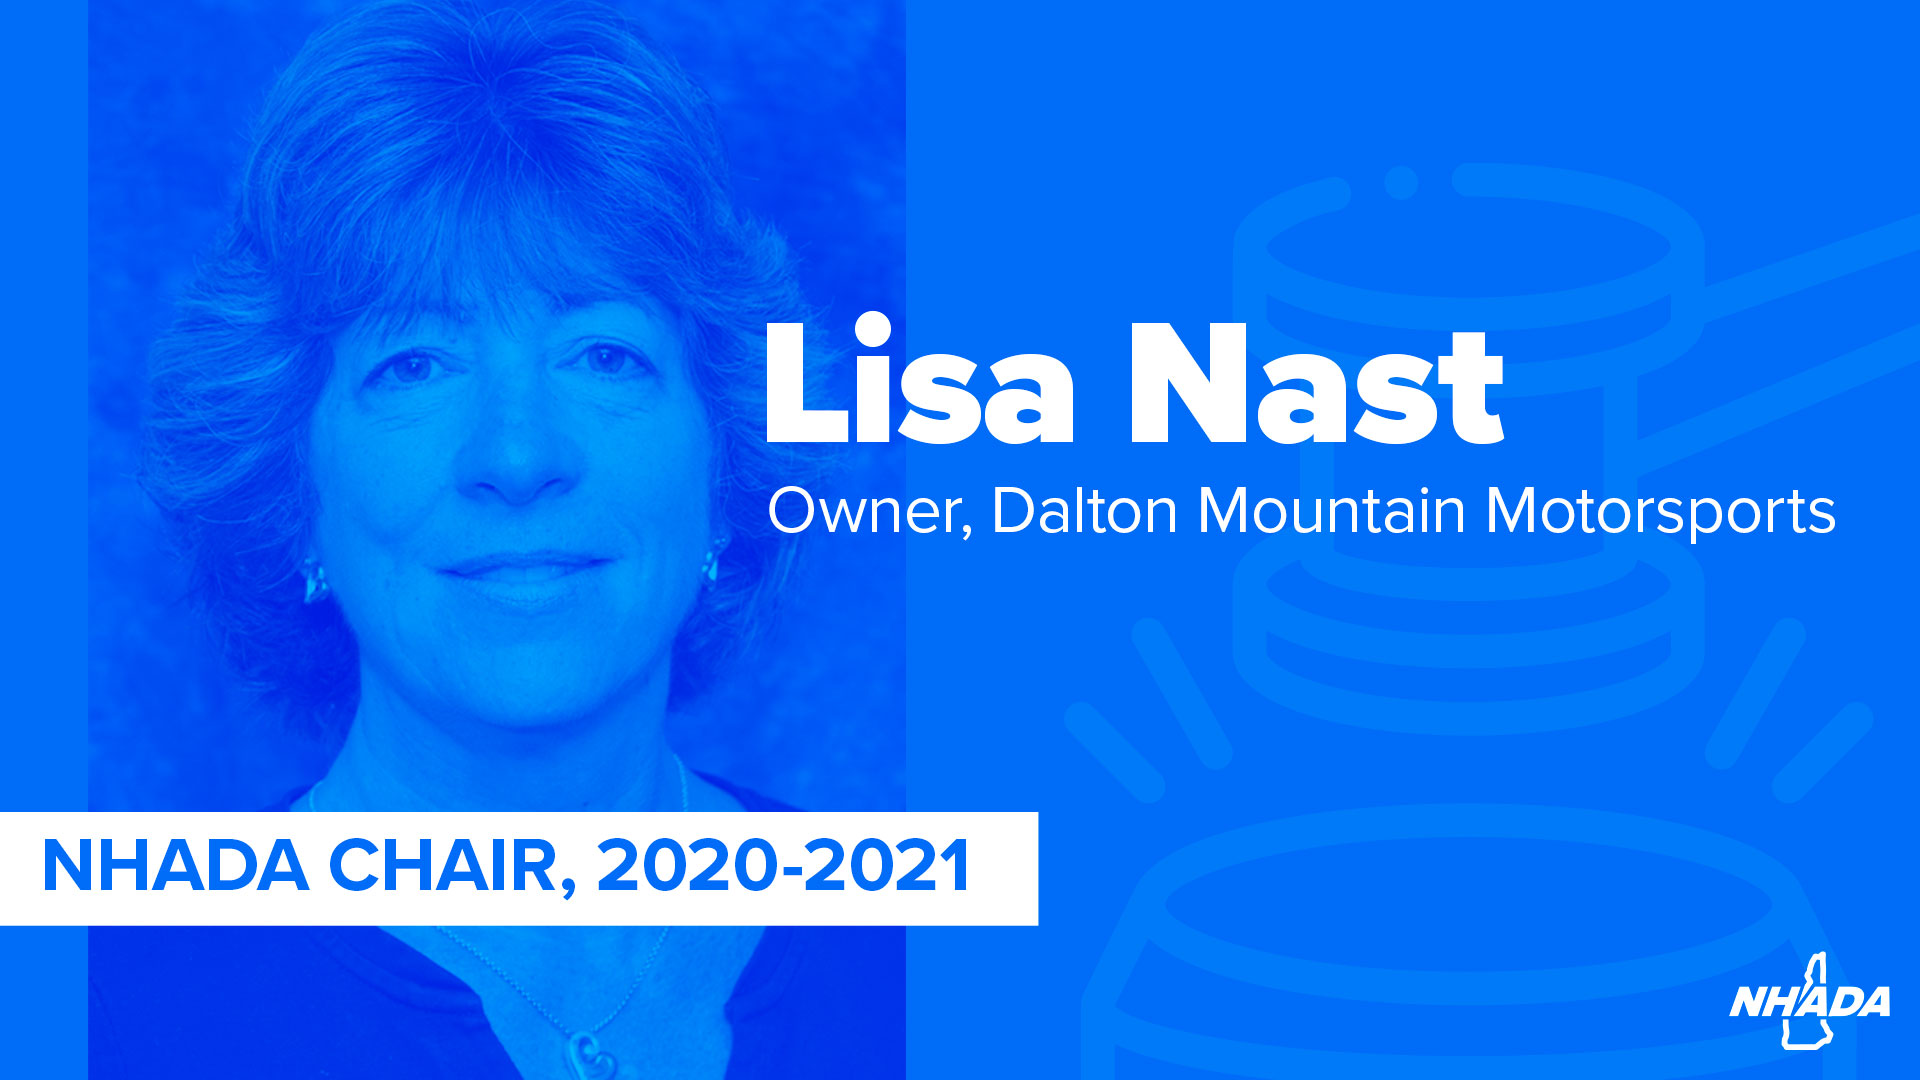 North Country's Lisa Nast Elected Chair Of NHADA Board Of Directors